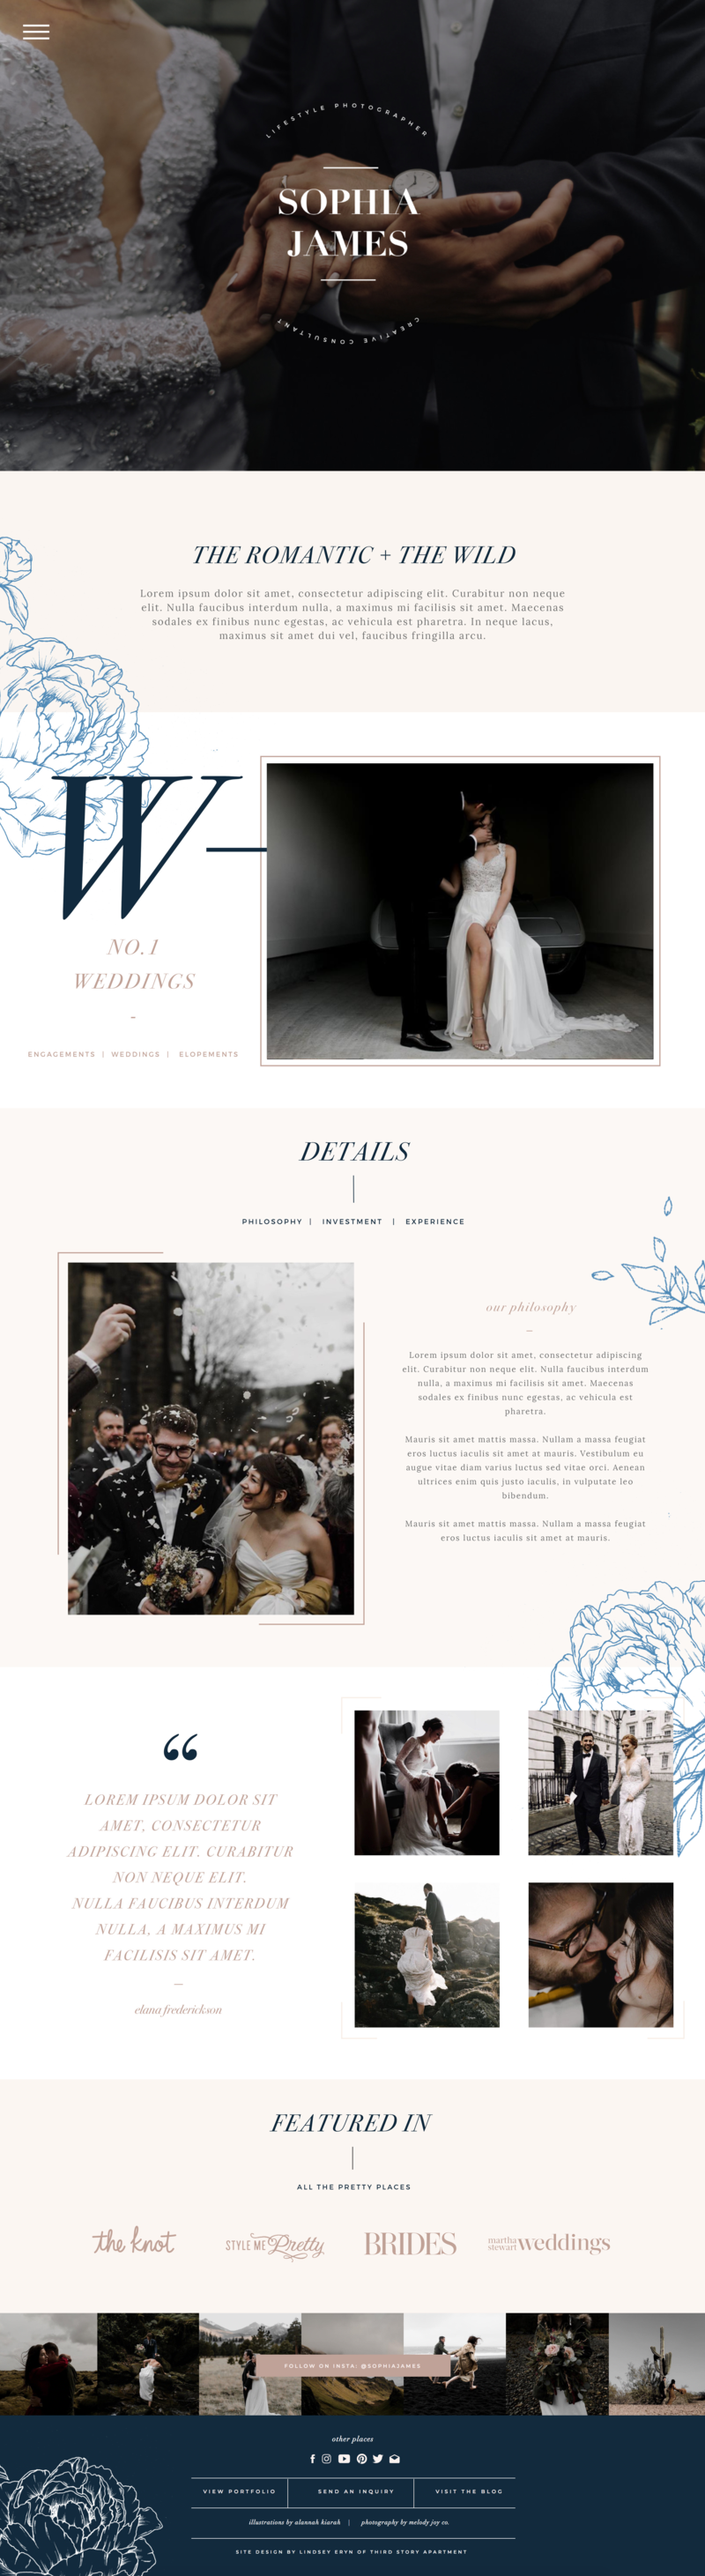 ThirdStory-WebTemplate-TheRomantic-4